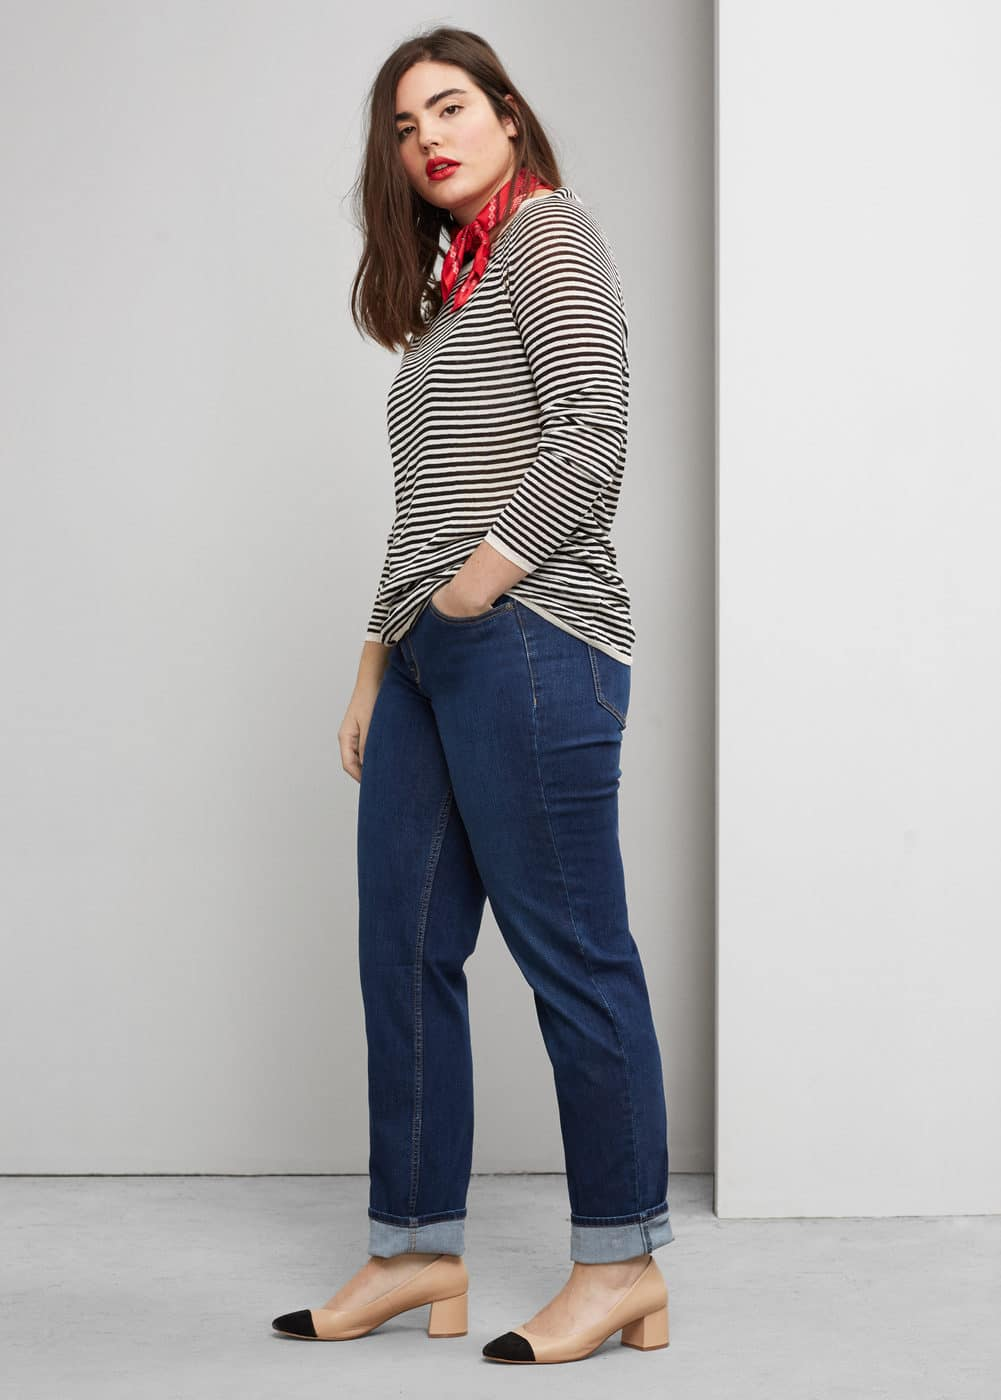 Striped linen sweater | VIOLETA BY MNG